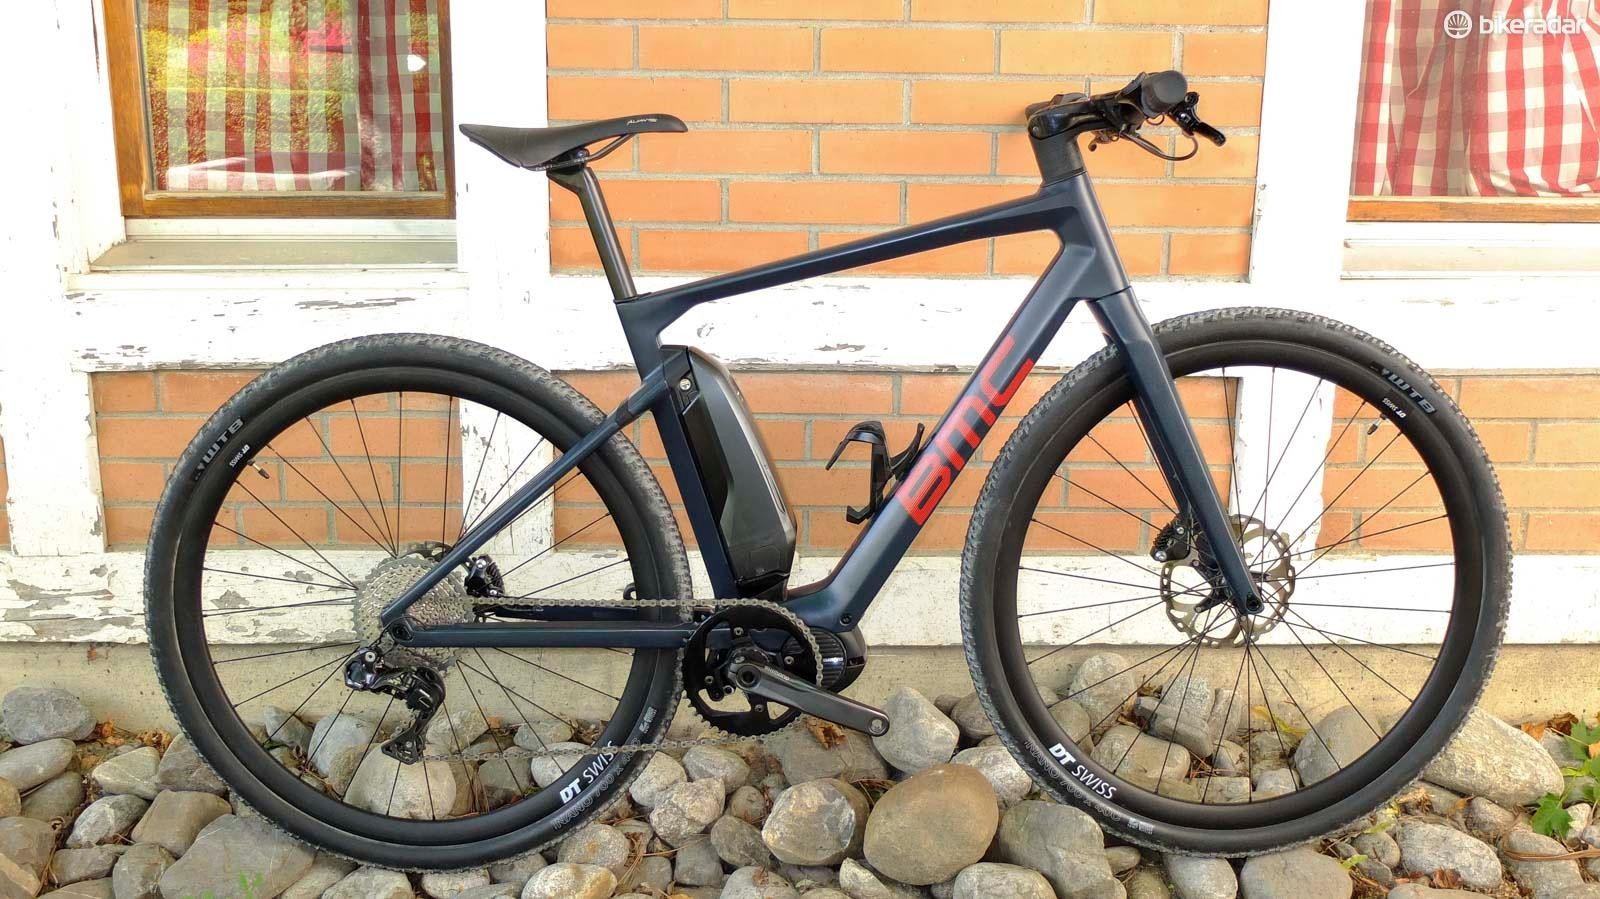 BMC's Alpenchallenge AMP Cross LTD is part road hybrid e-bike, part gravel bike